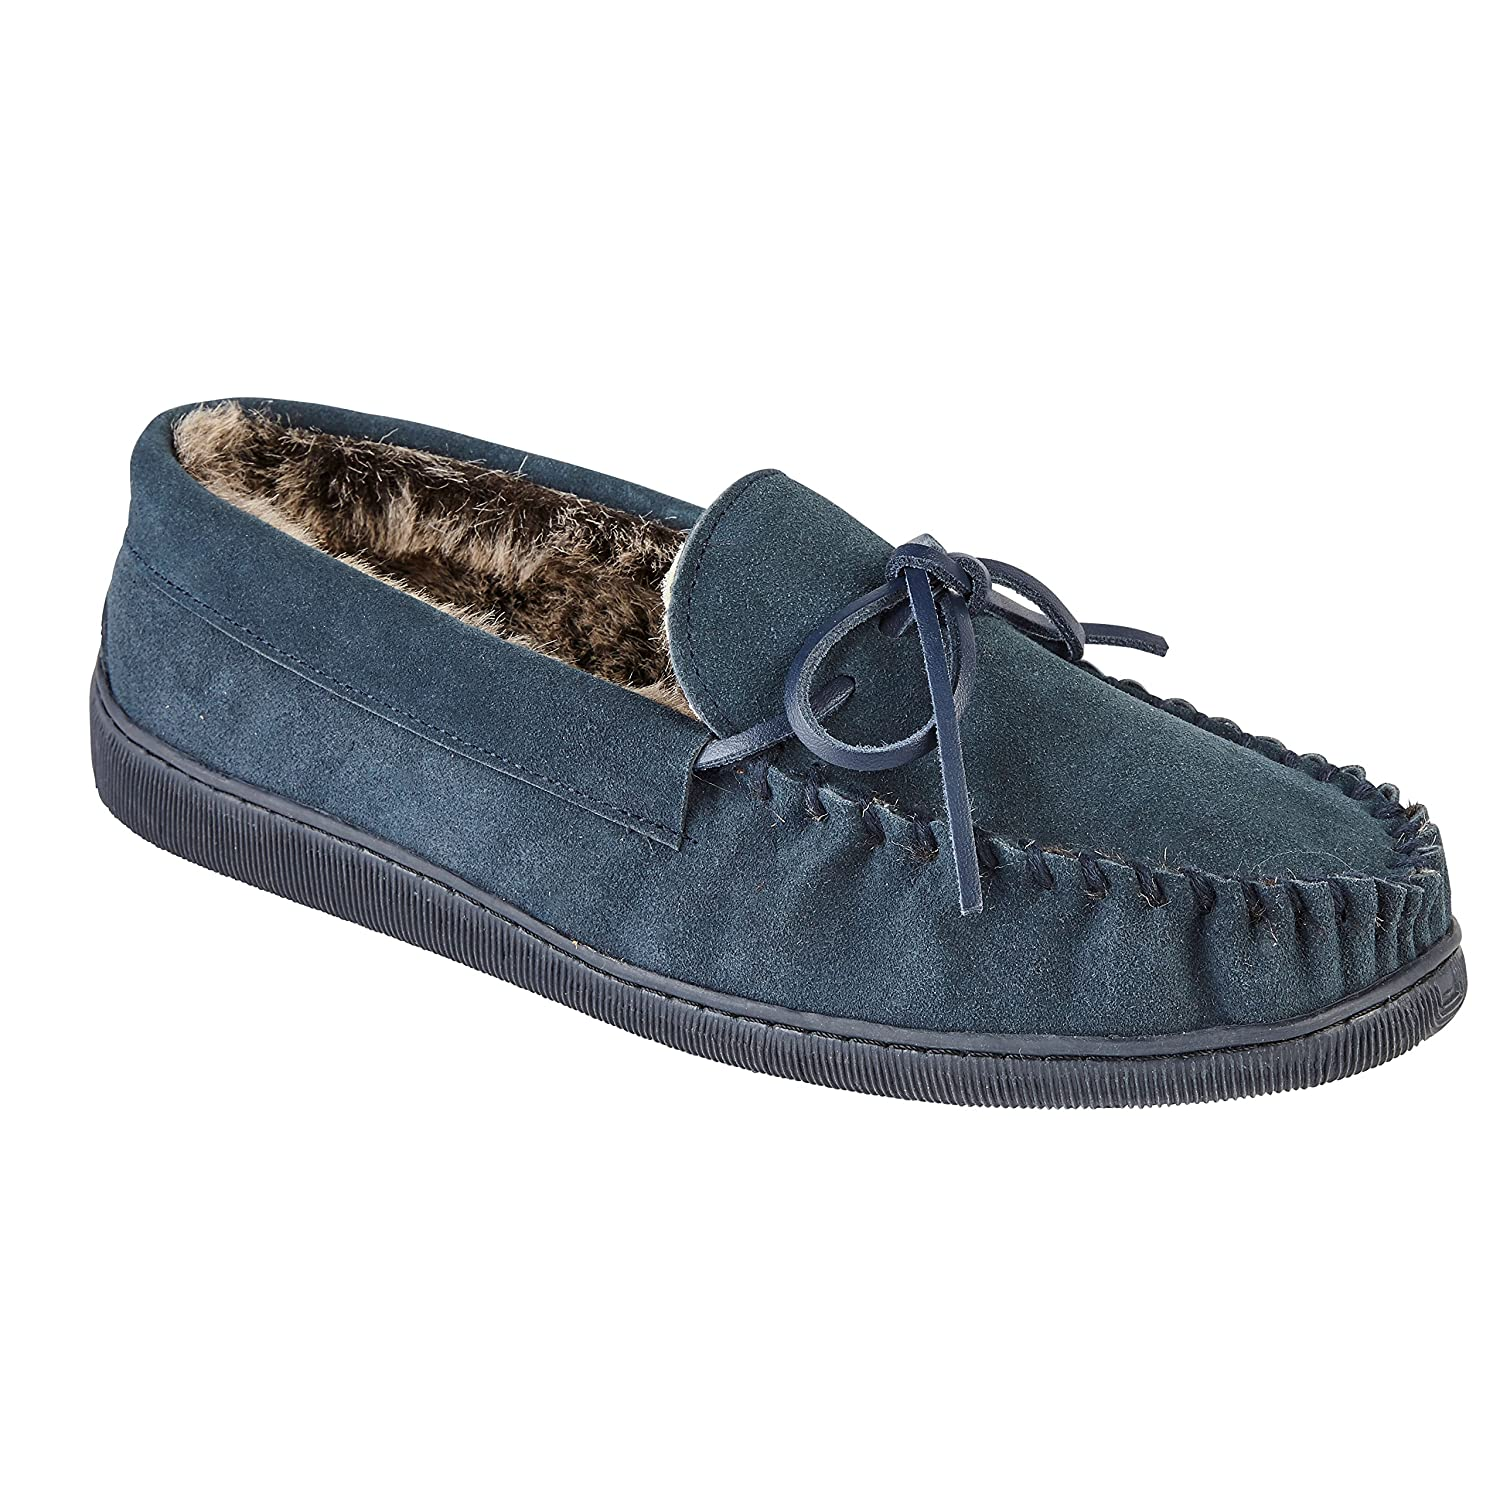 Fashion by Purdashian Boxed Quality Mens Gents England Real Suede Slip On Moccasin Slippers Loafers